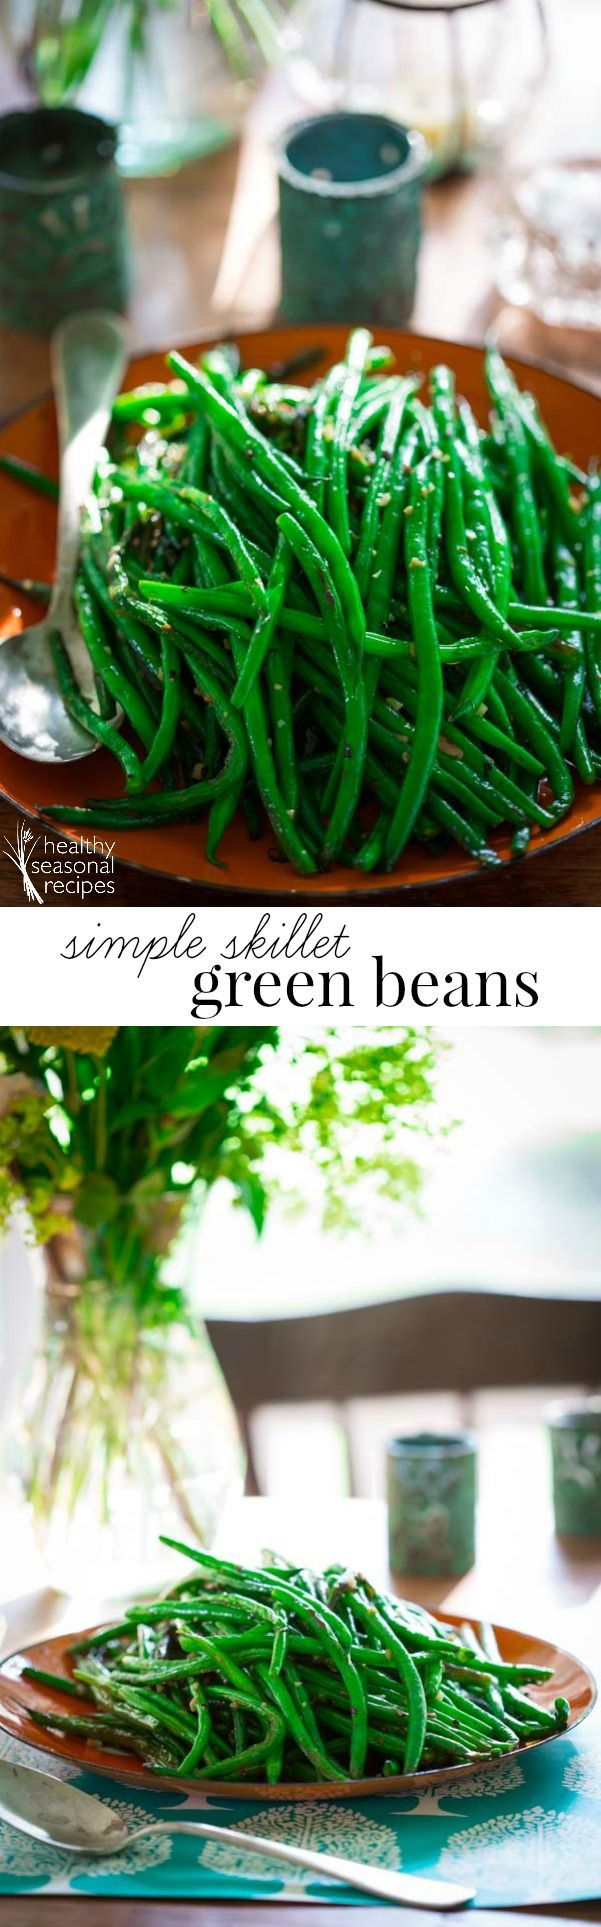 Blog post at Healthy Seasonal Recipes : These simple skillet green beans are a perfect healthy side dish for lazy days of summer. Simple one-pot green bean recipe with garlic, oliv[..]